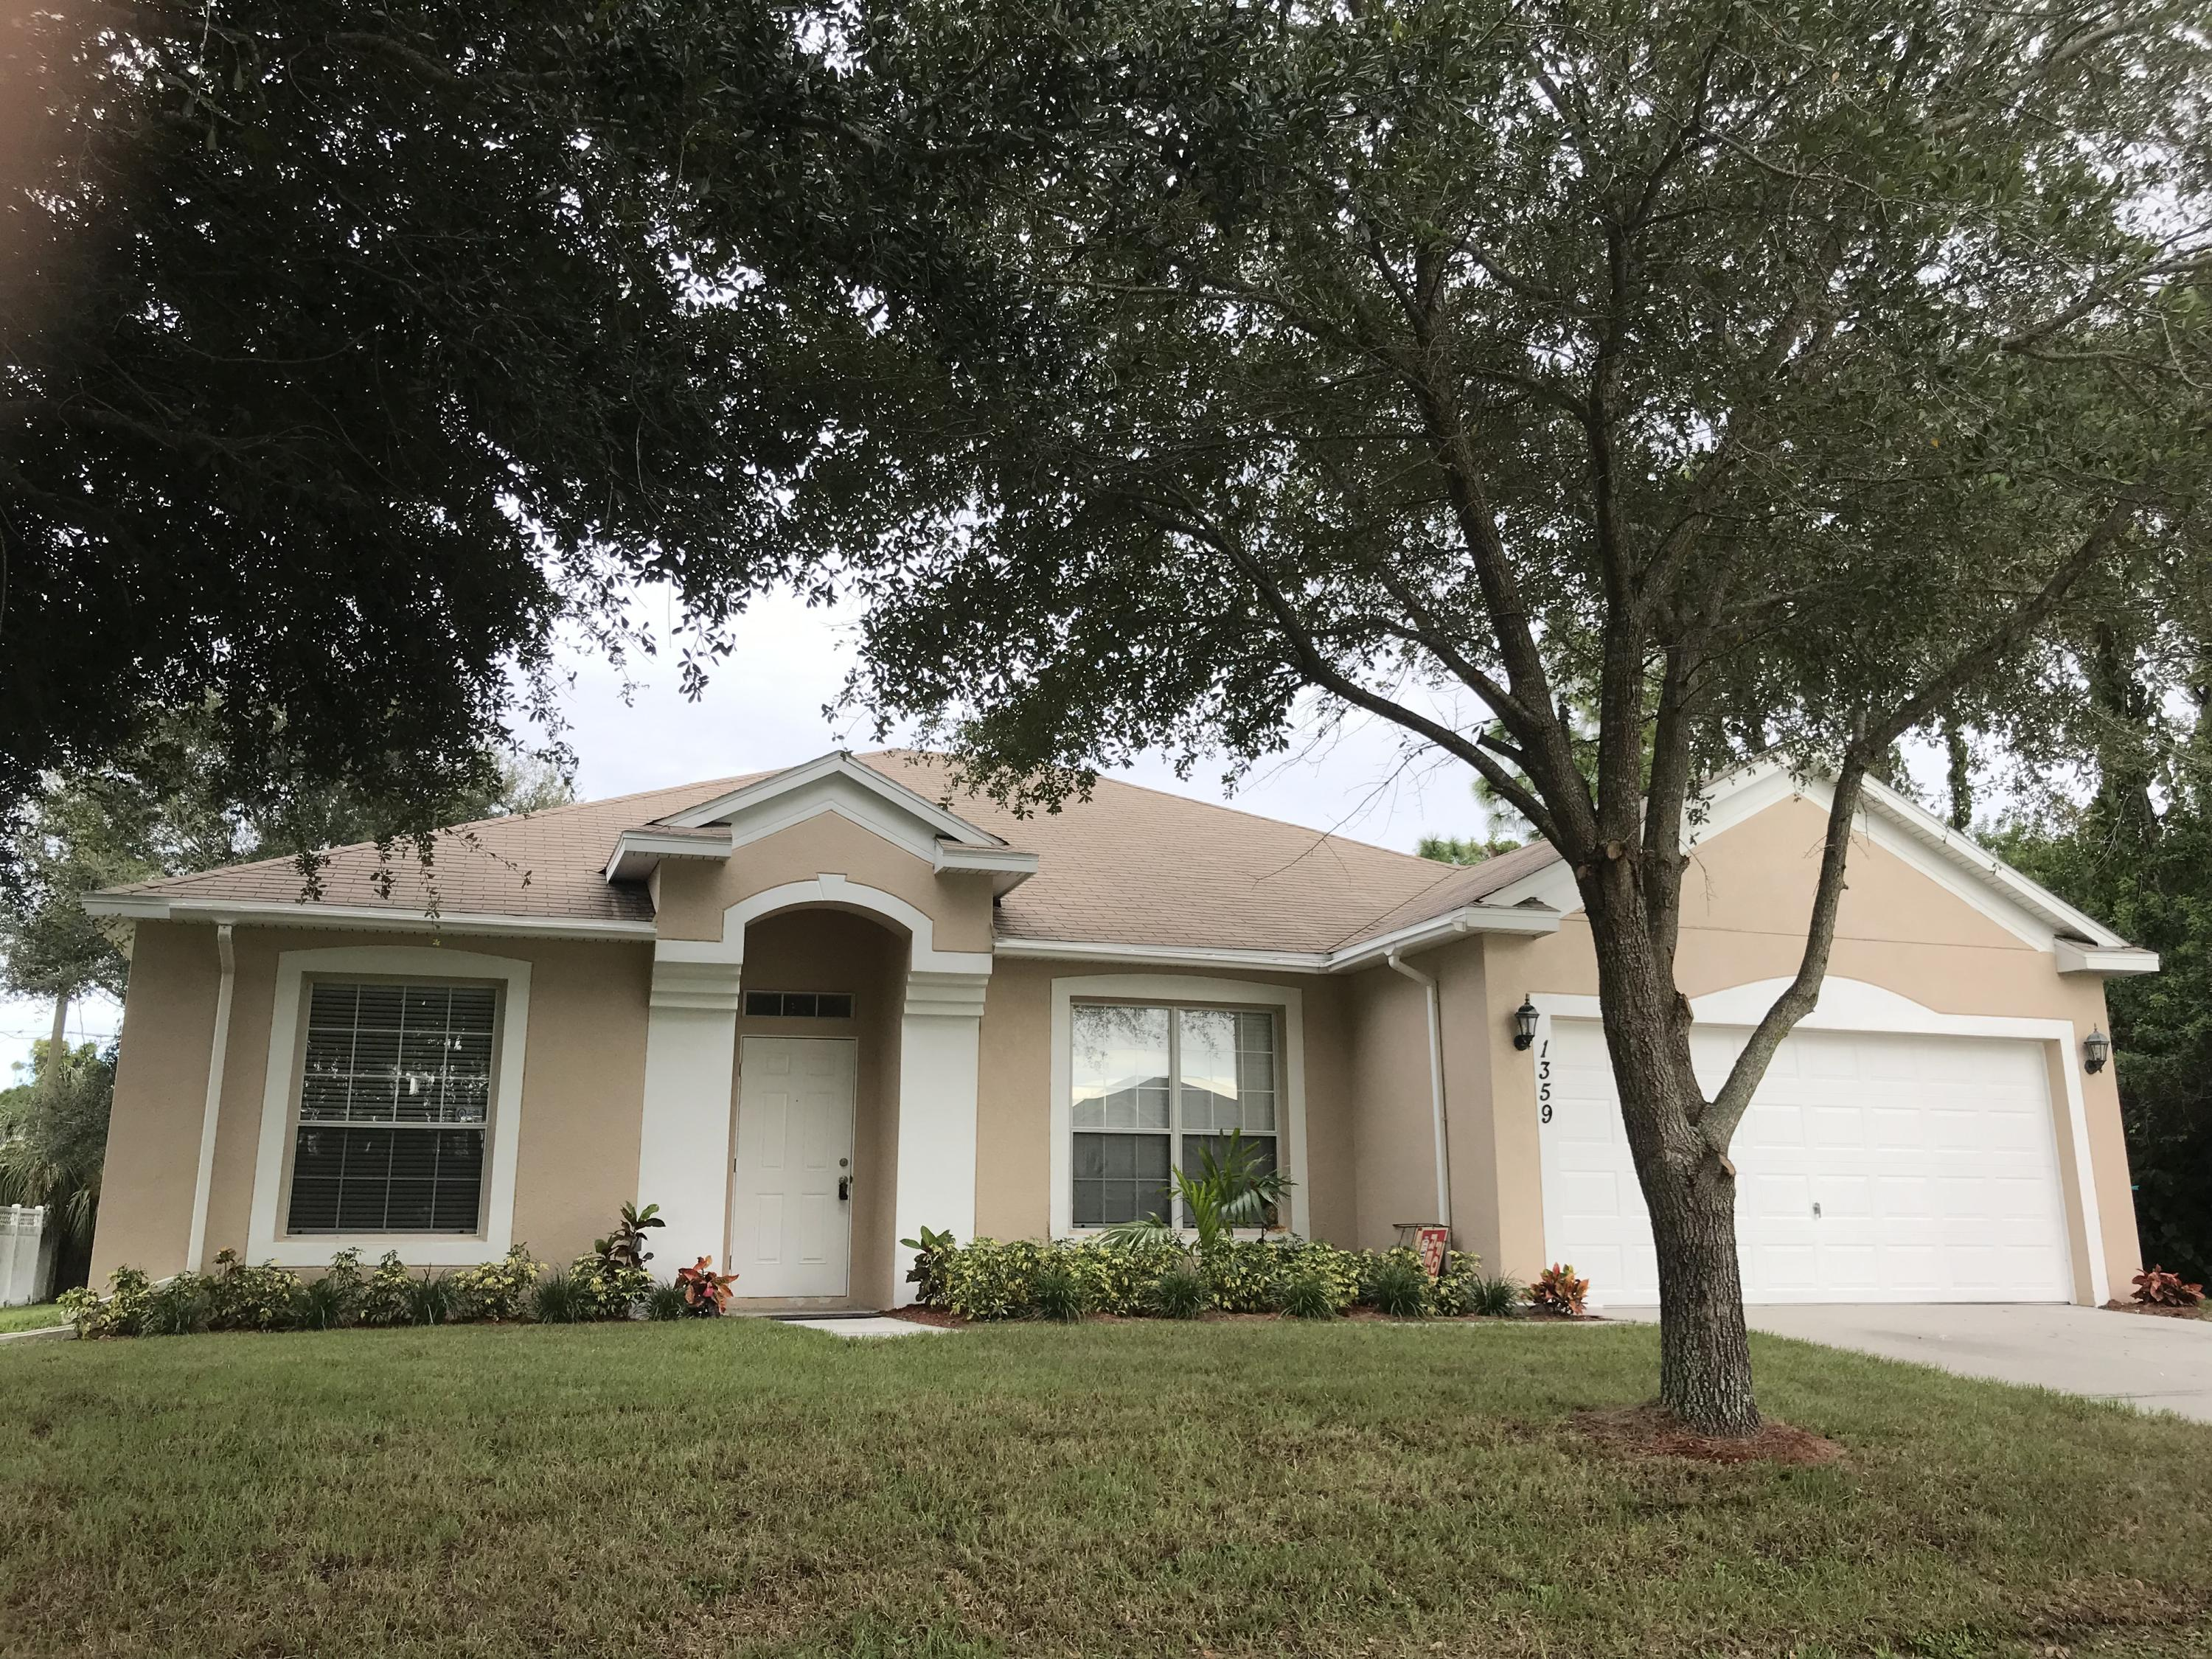 1359 Vater Nw Avenue, Palm Bay, FL 32907